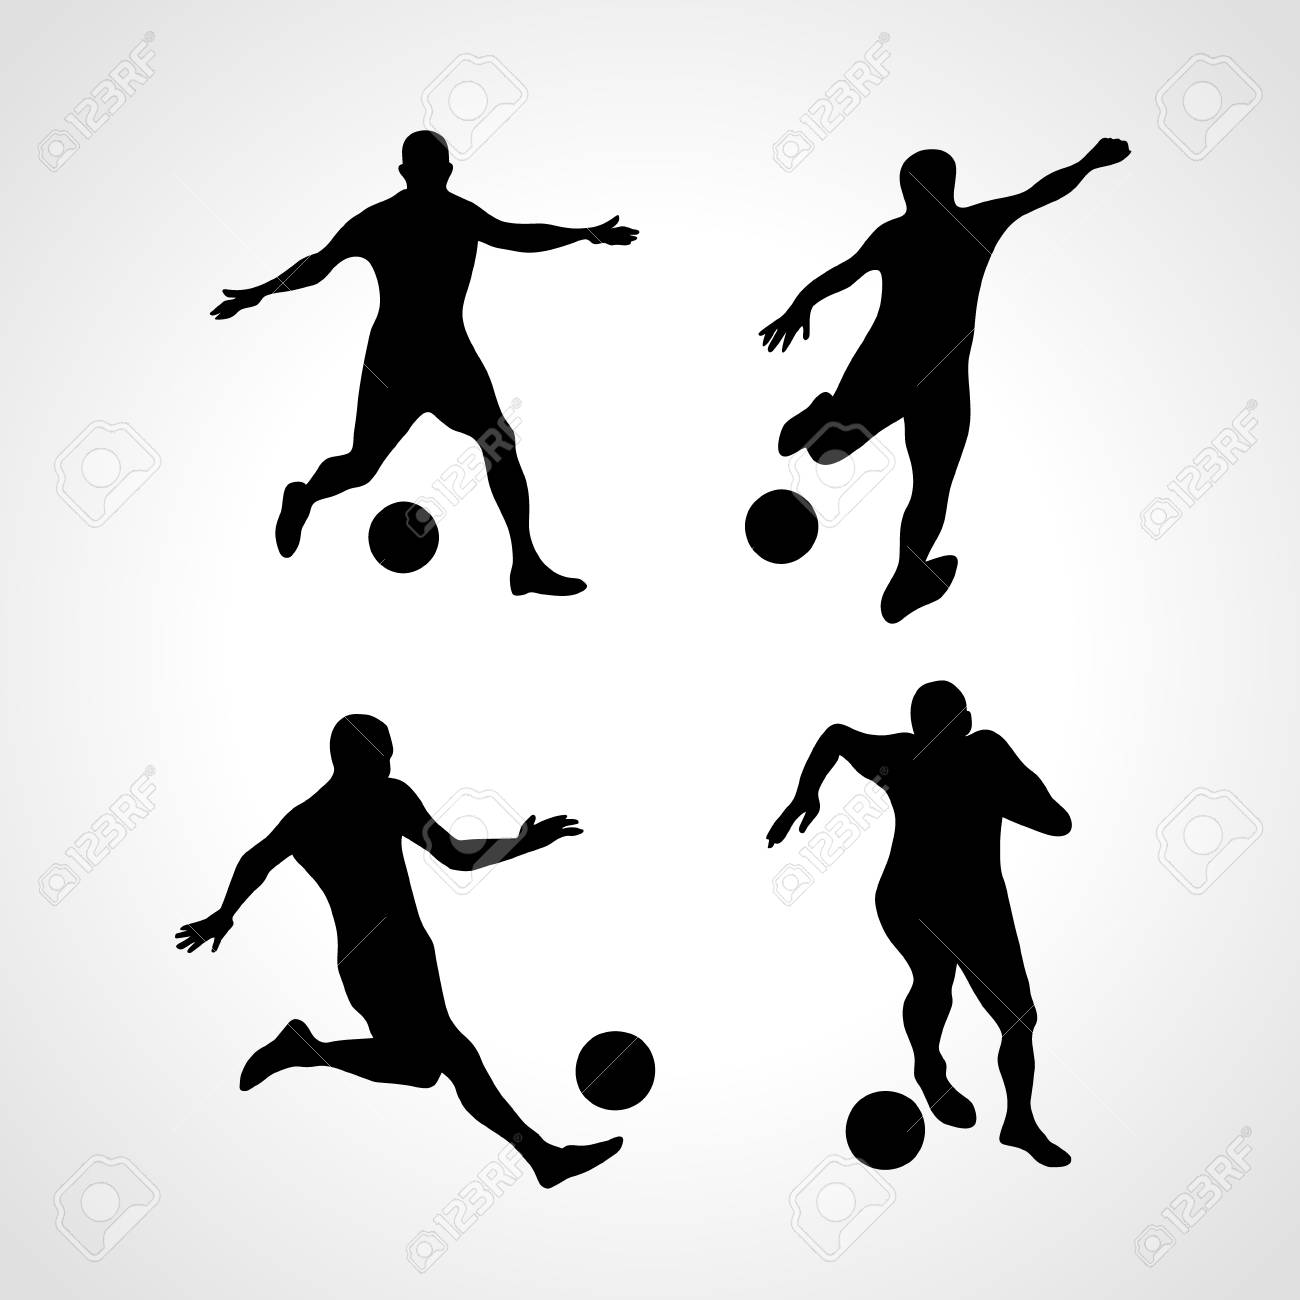 Soccer Players Silhouettes Set in various Poses with the Ball, vector isolated on white background - 56891150